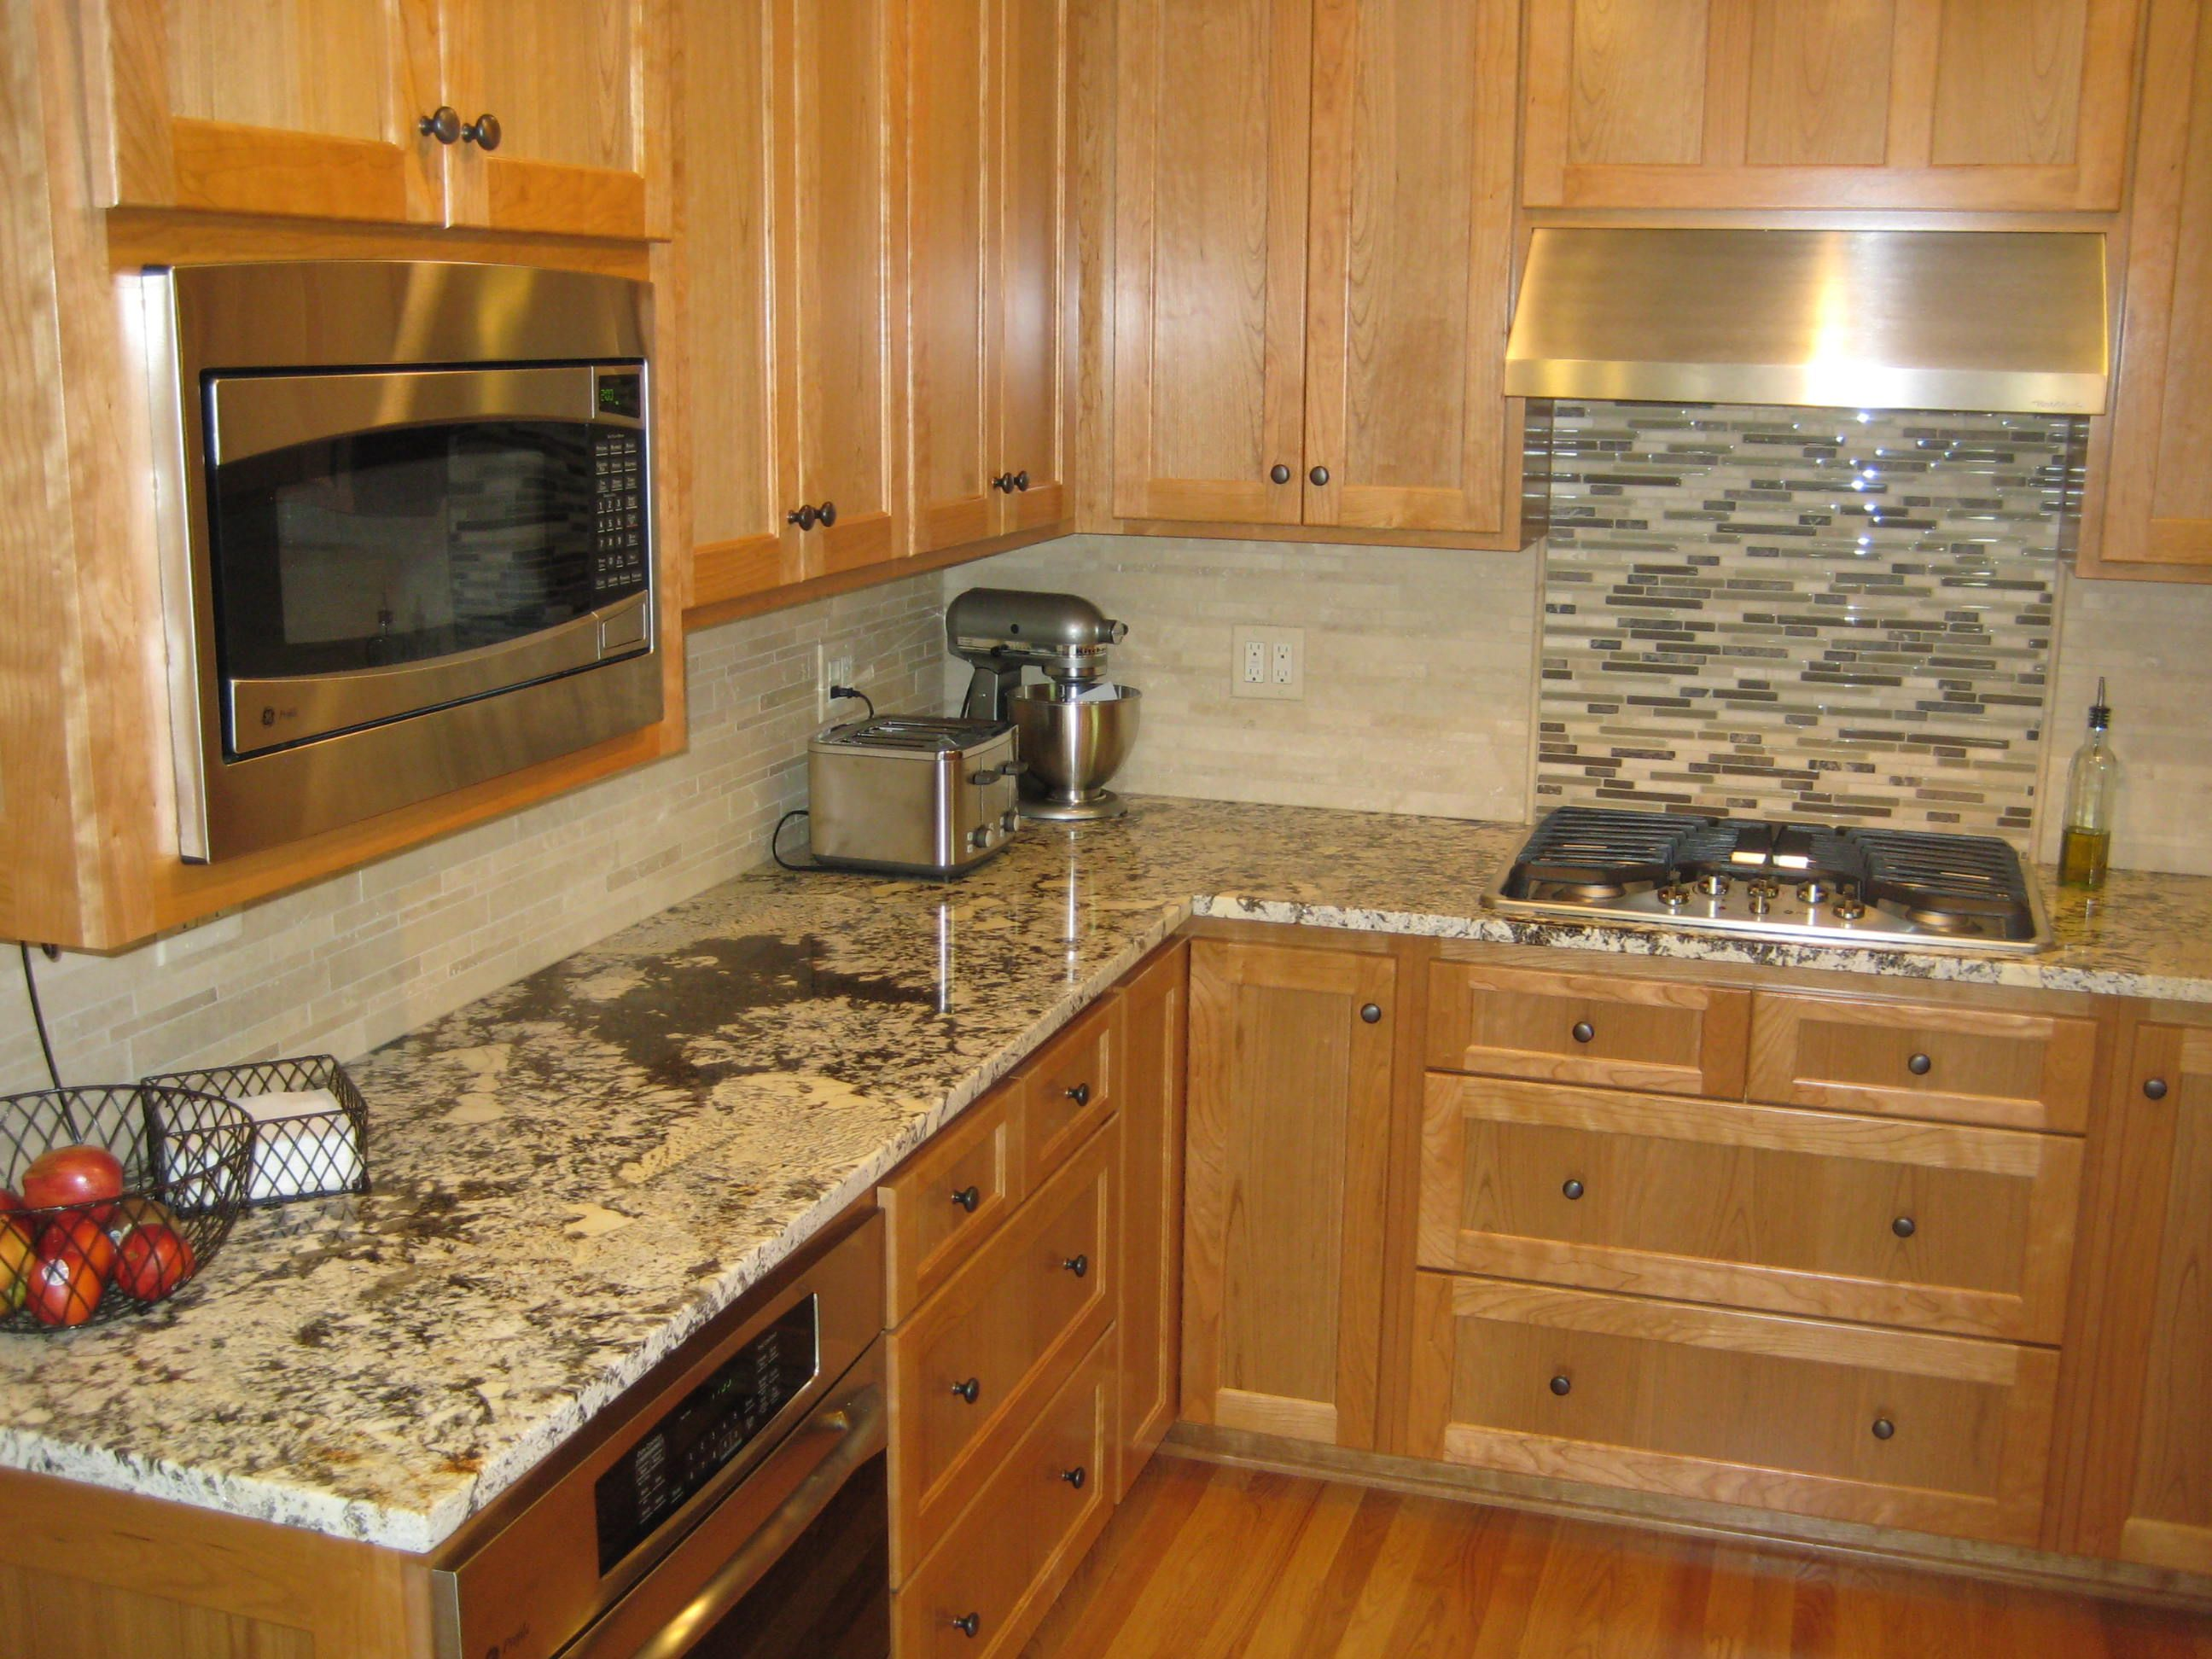 kitchen wall tile backsplash ideas bianco antico granite like backsplash but not stove 24937